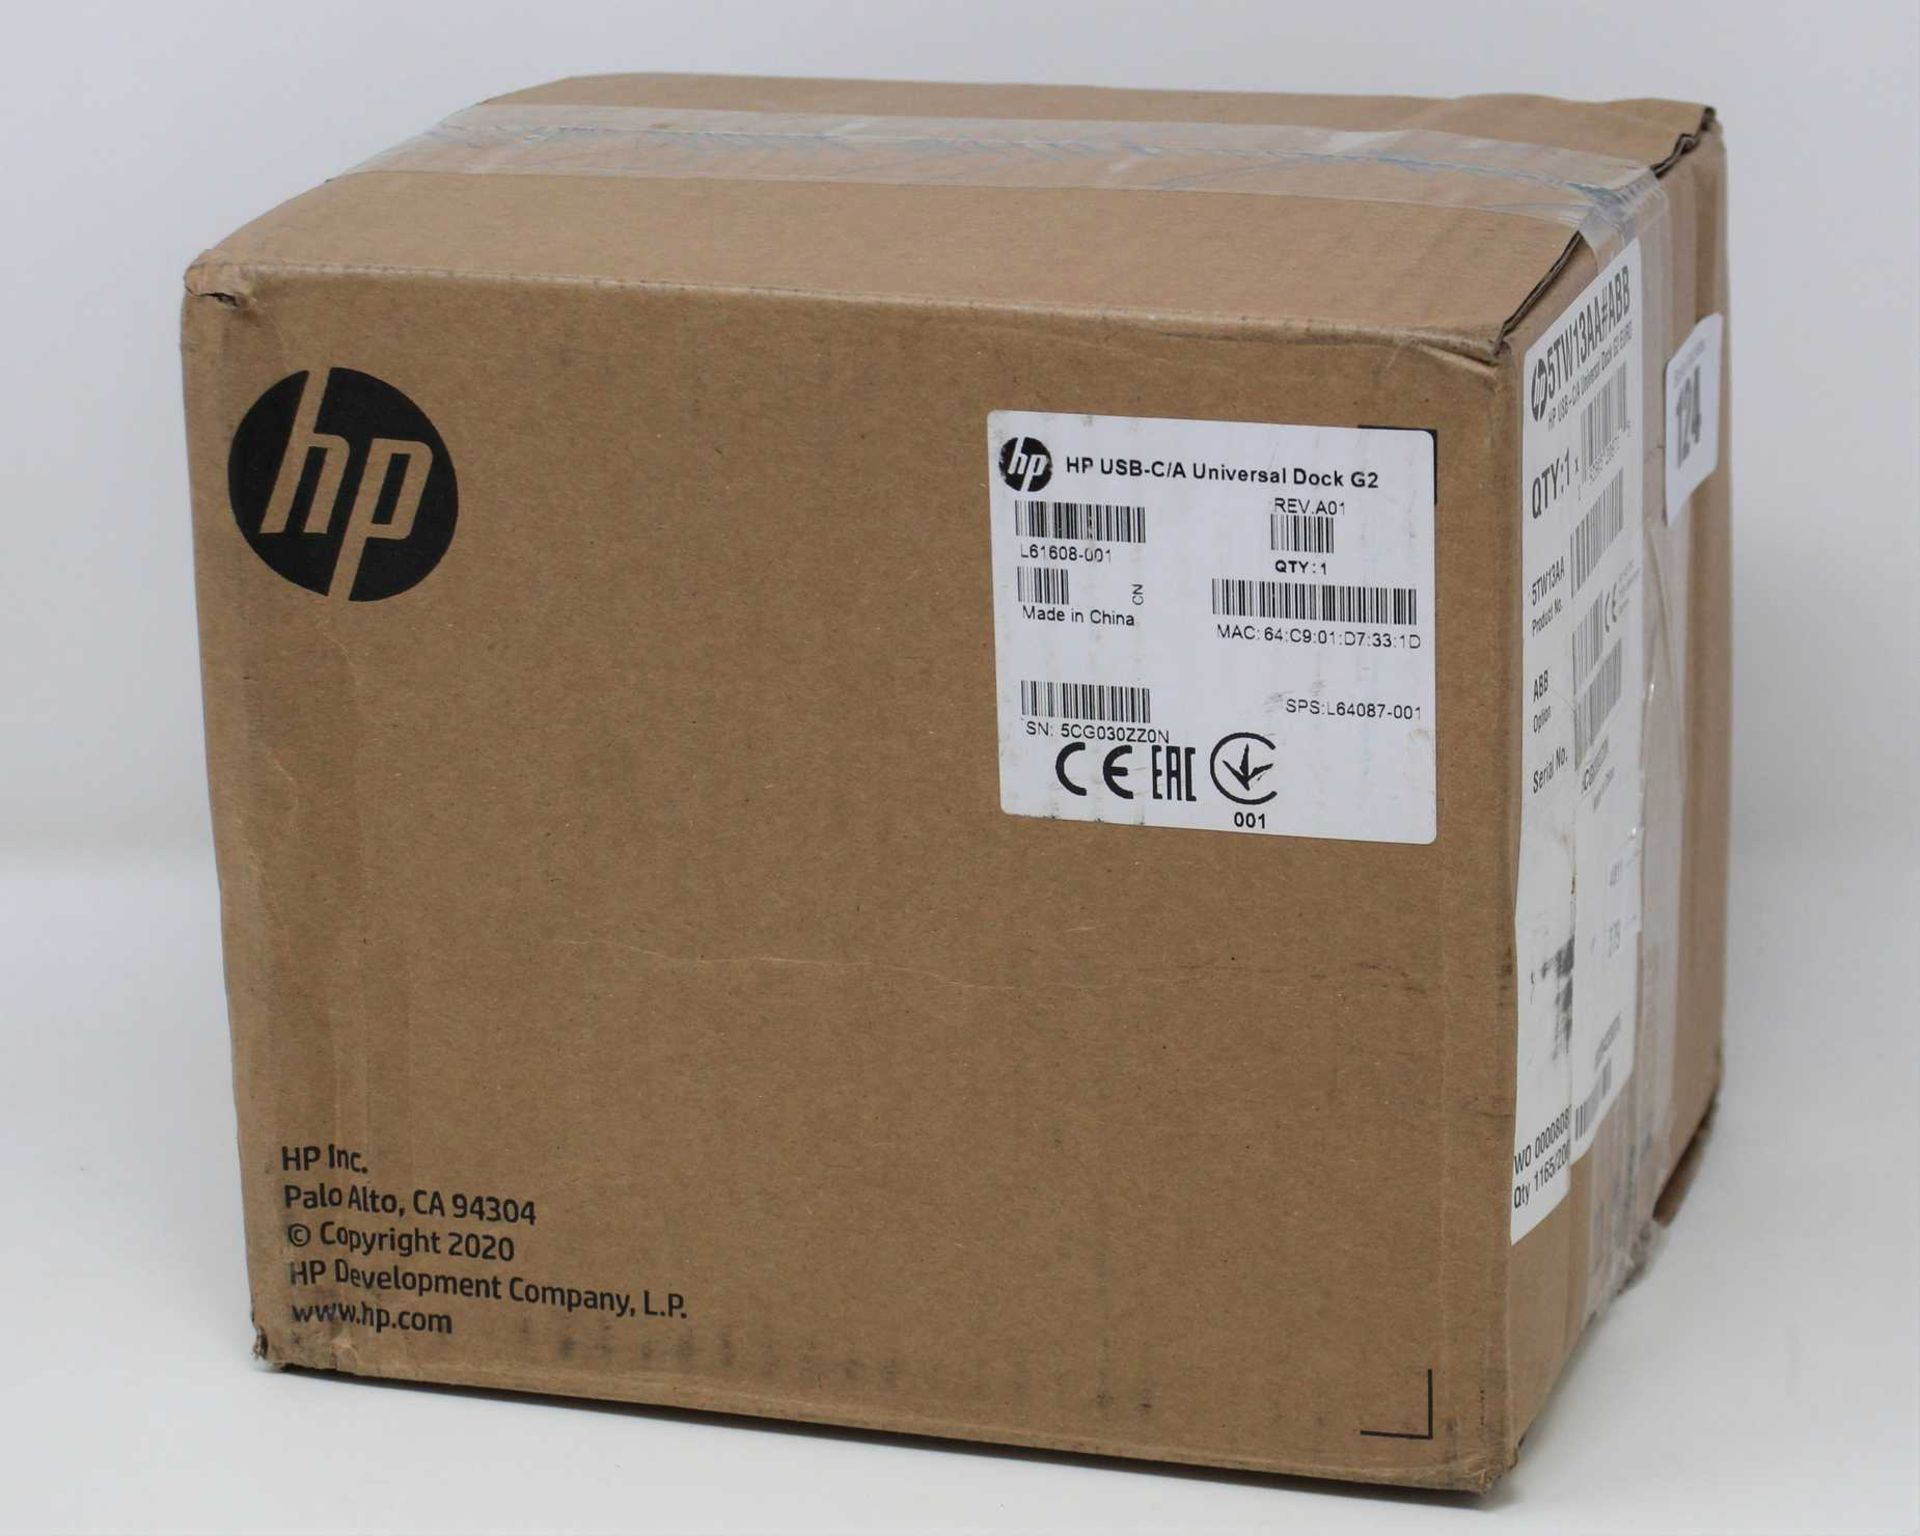 A boxed as new HP USB-C/A Universal Dock G2 (EURO 5TW13AA#ABB) (Box sealed, some damage to box).